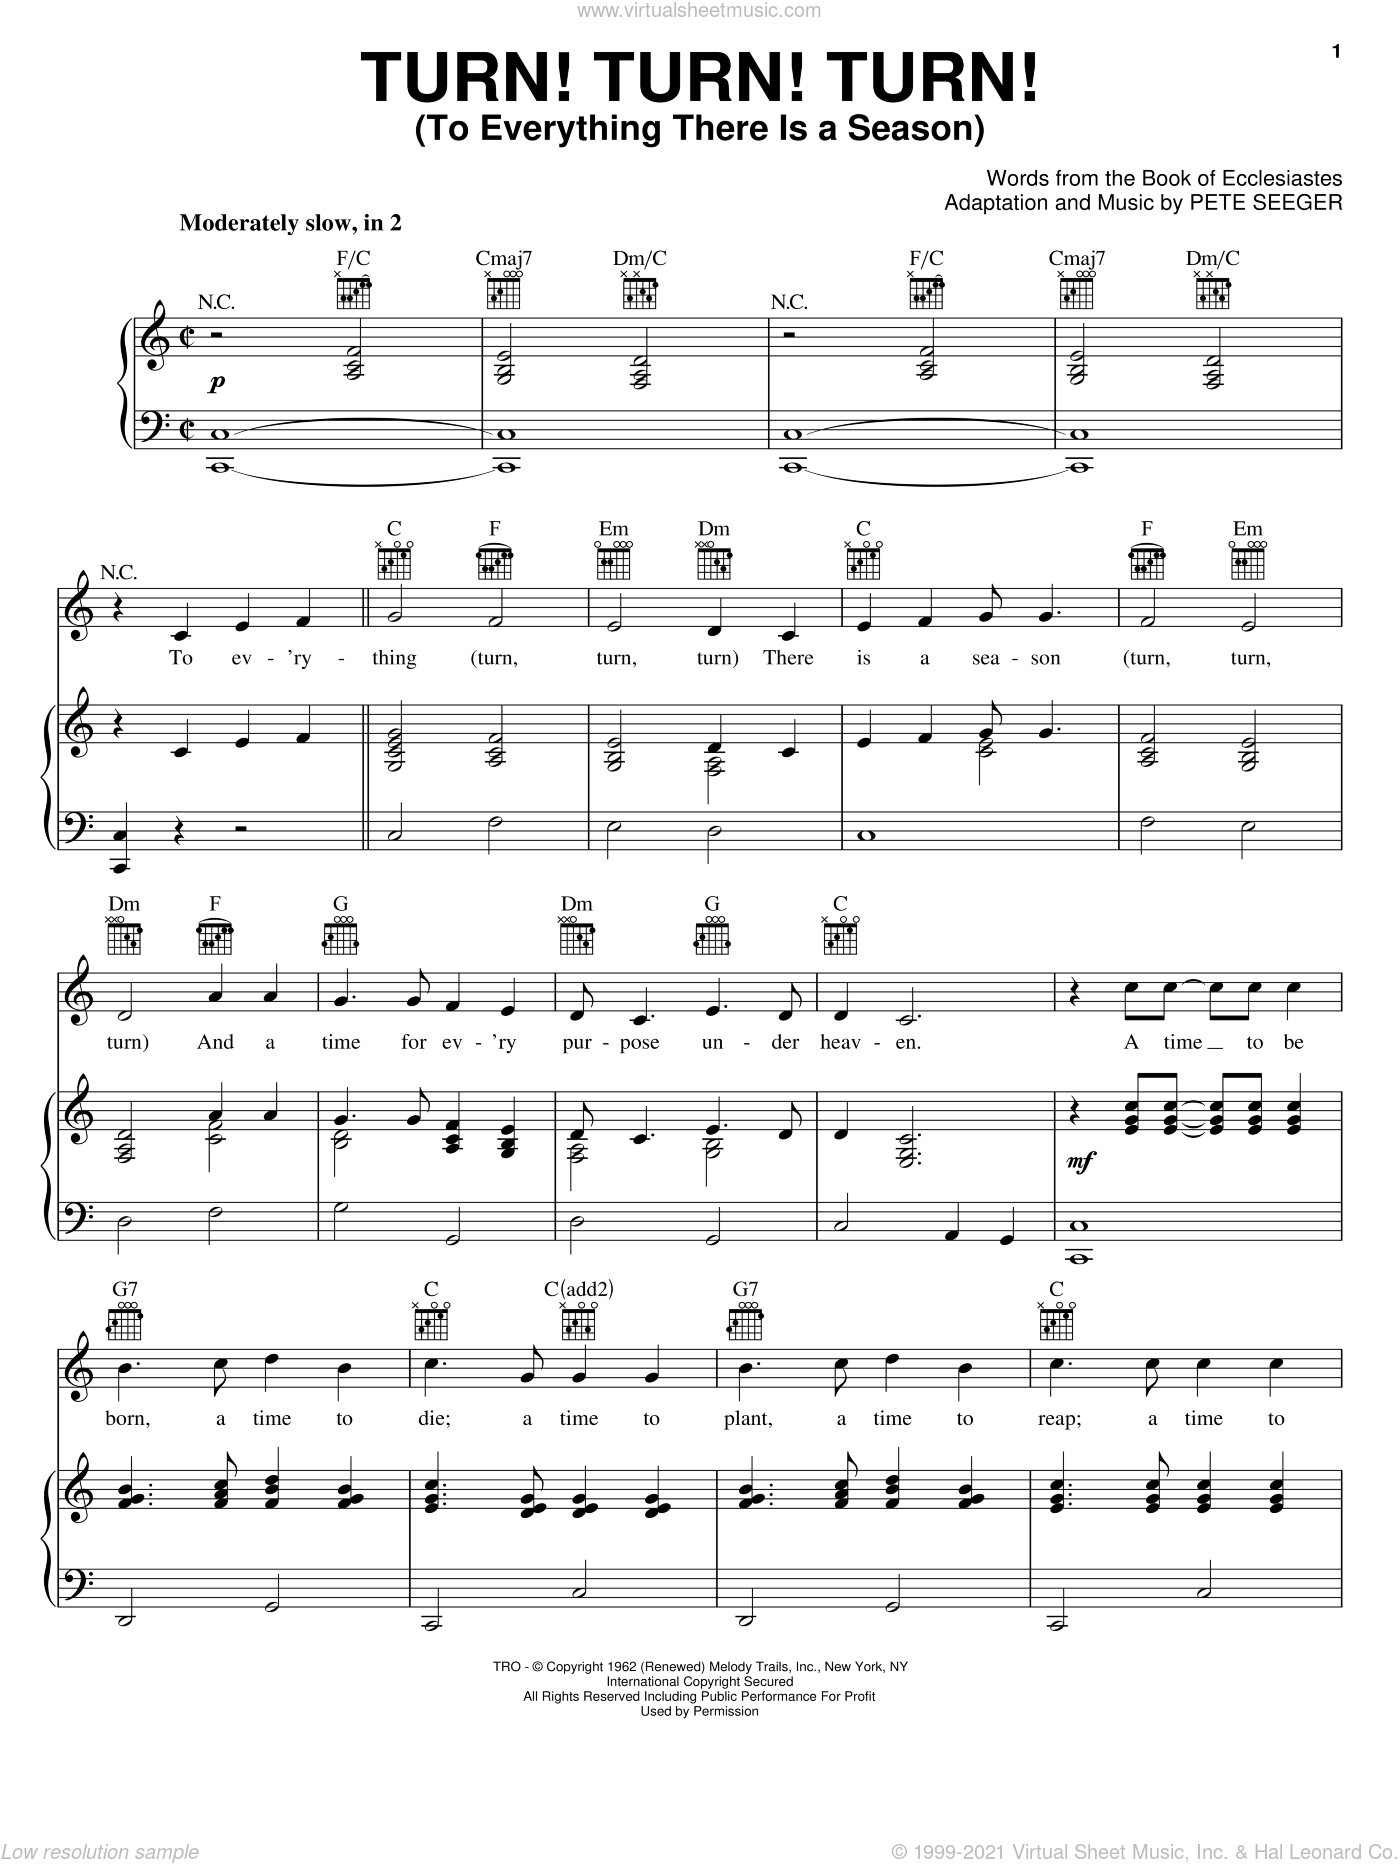 Turn! Turn! Turn! (To Everything There Is A Season) sheet music for voice, piano or guitar by The Byrds and Pete Seeger, intermediate voice, piano or guitar. Score Image Preview.